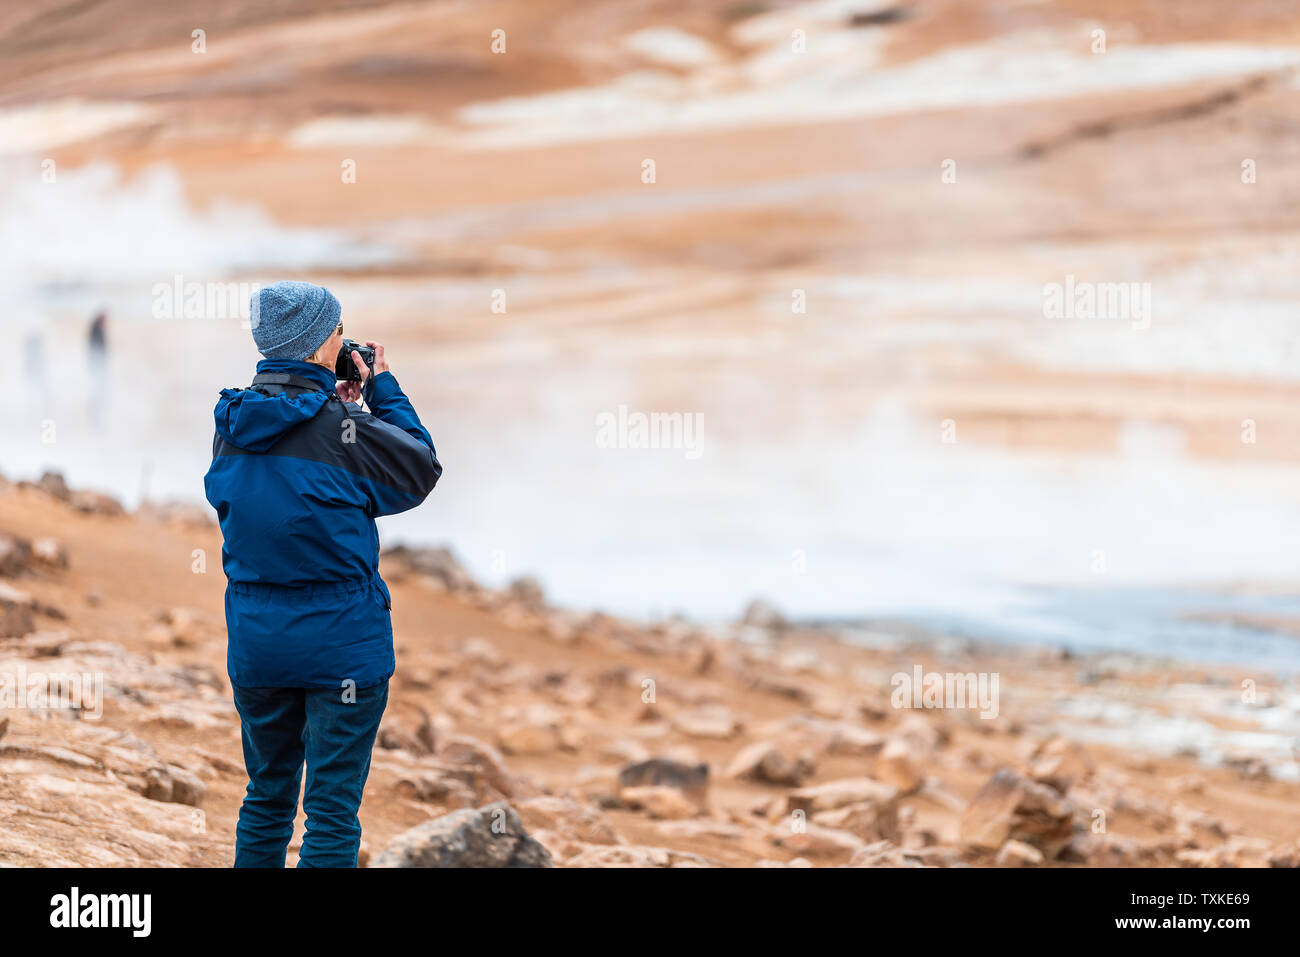 Hverir, Iceland - June 16, 2018: Hot fumaroles with people tourist one woman in coat looking at view with geyser in geothermal spot area by Myvatn lak - Stock Image